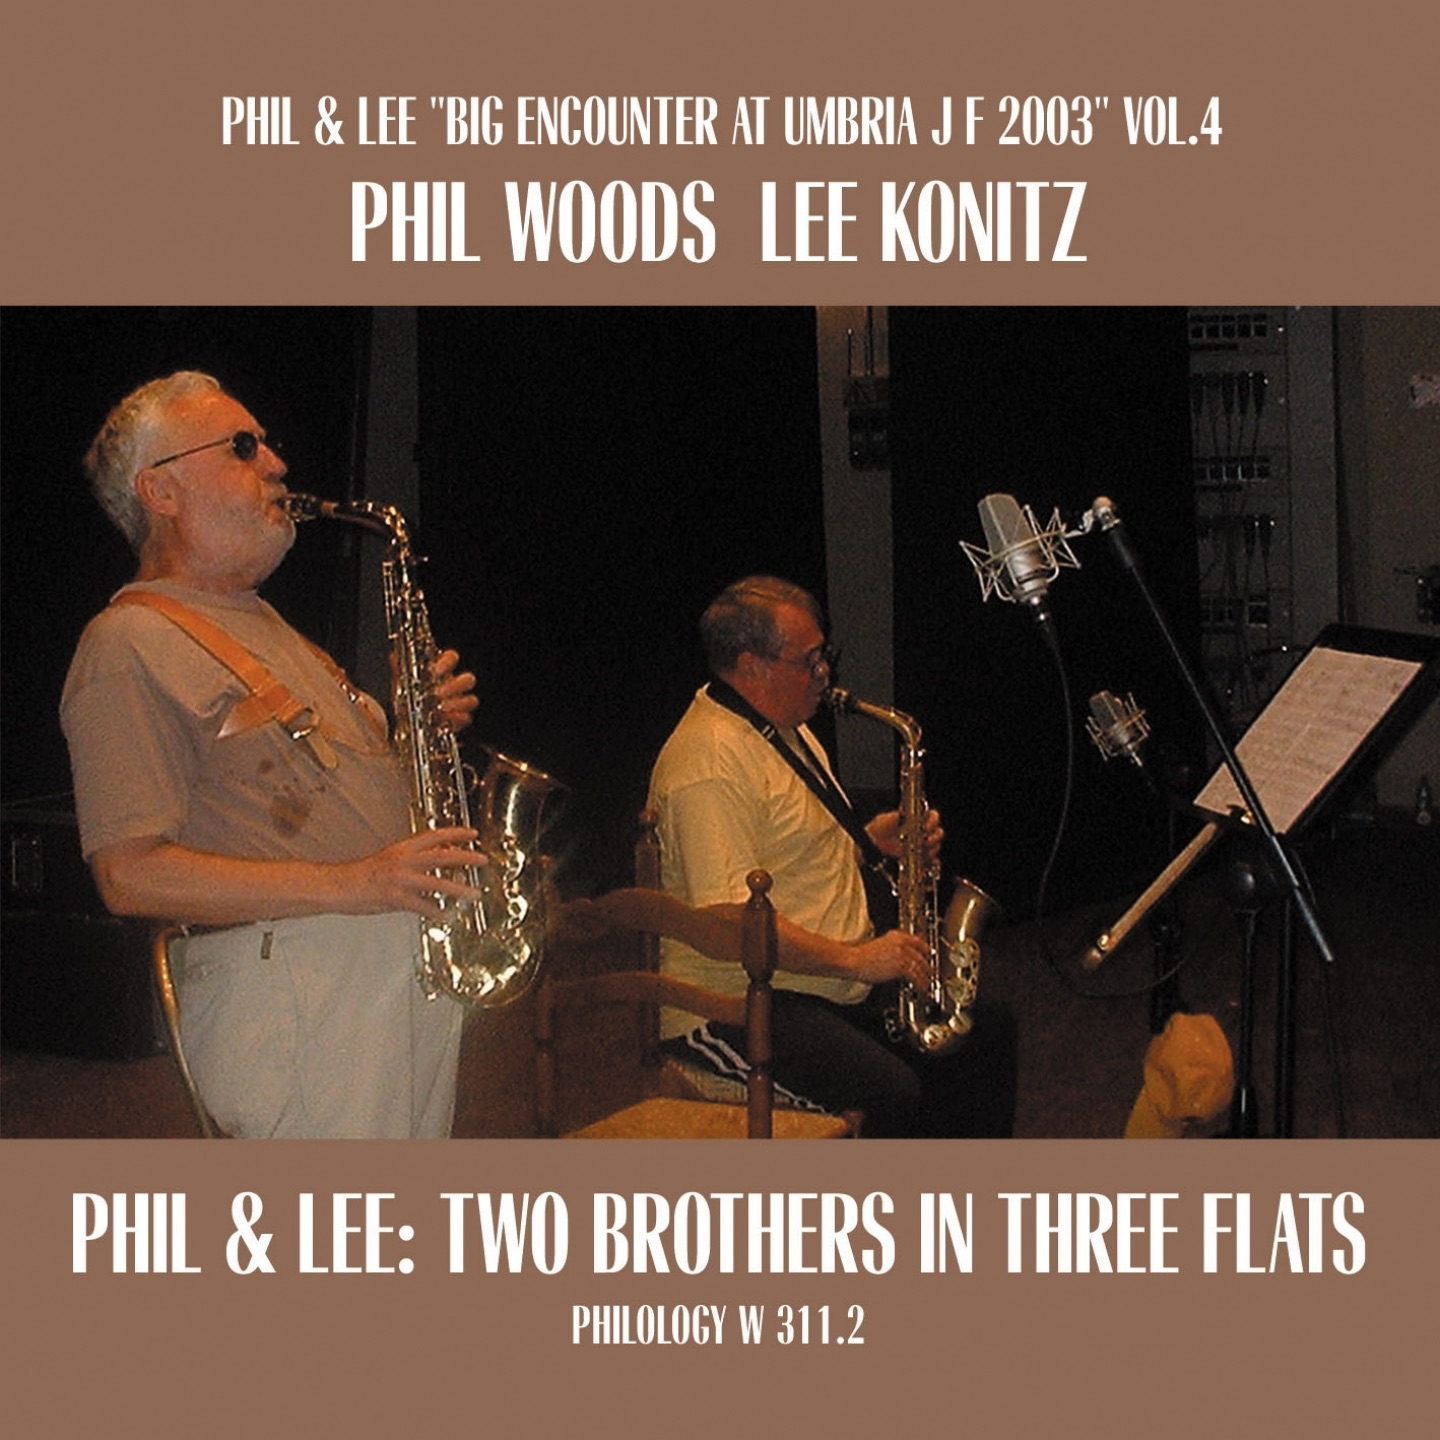 Phil & Lee: Two Brothers In Three Flats